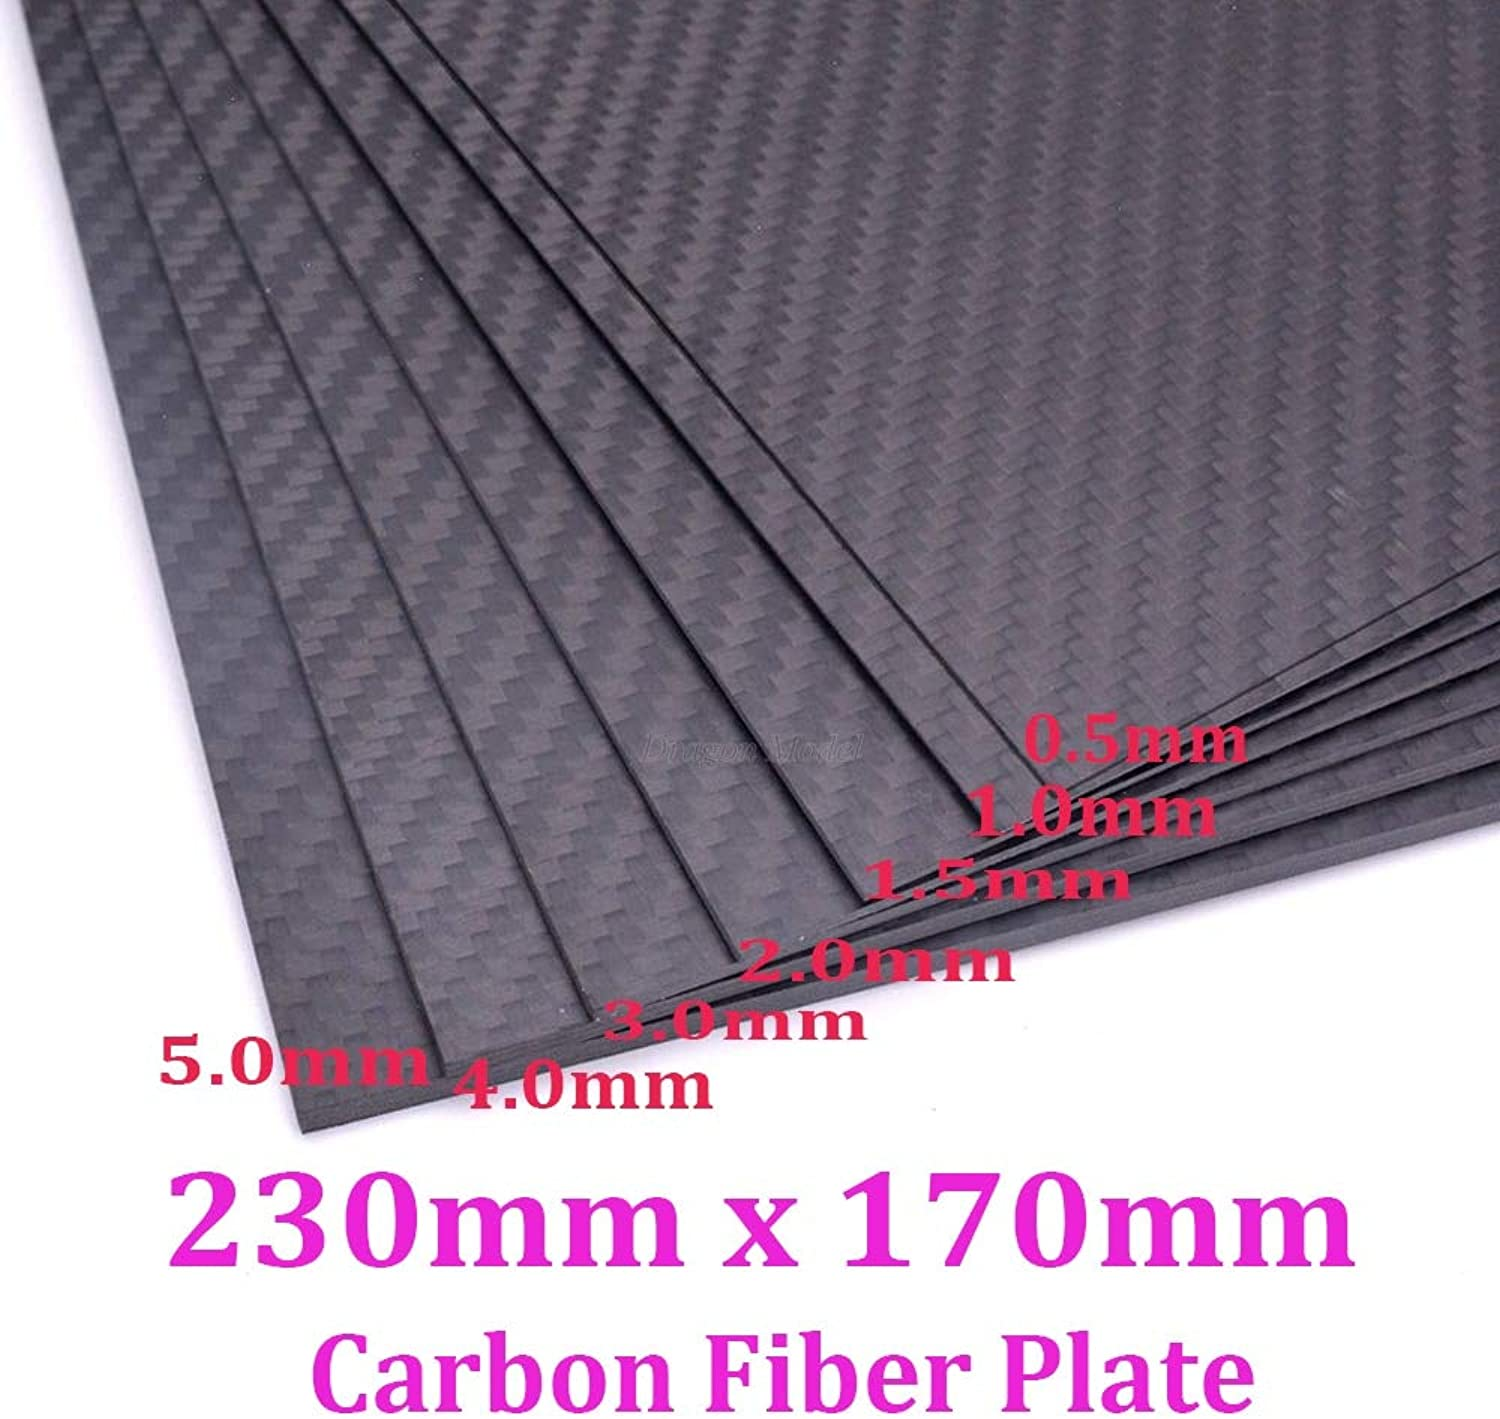 Laliva Real Carbon Fiber Plate Panel Sheets 230mm X 170mm 0.5mm 1mm 1.5mm 2mm 3mm 4mm 5mm Thickness Composite Hardness Material for RC - (color  1.5mm Thickness)